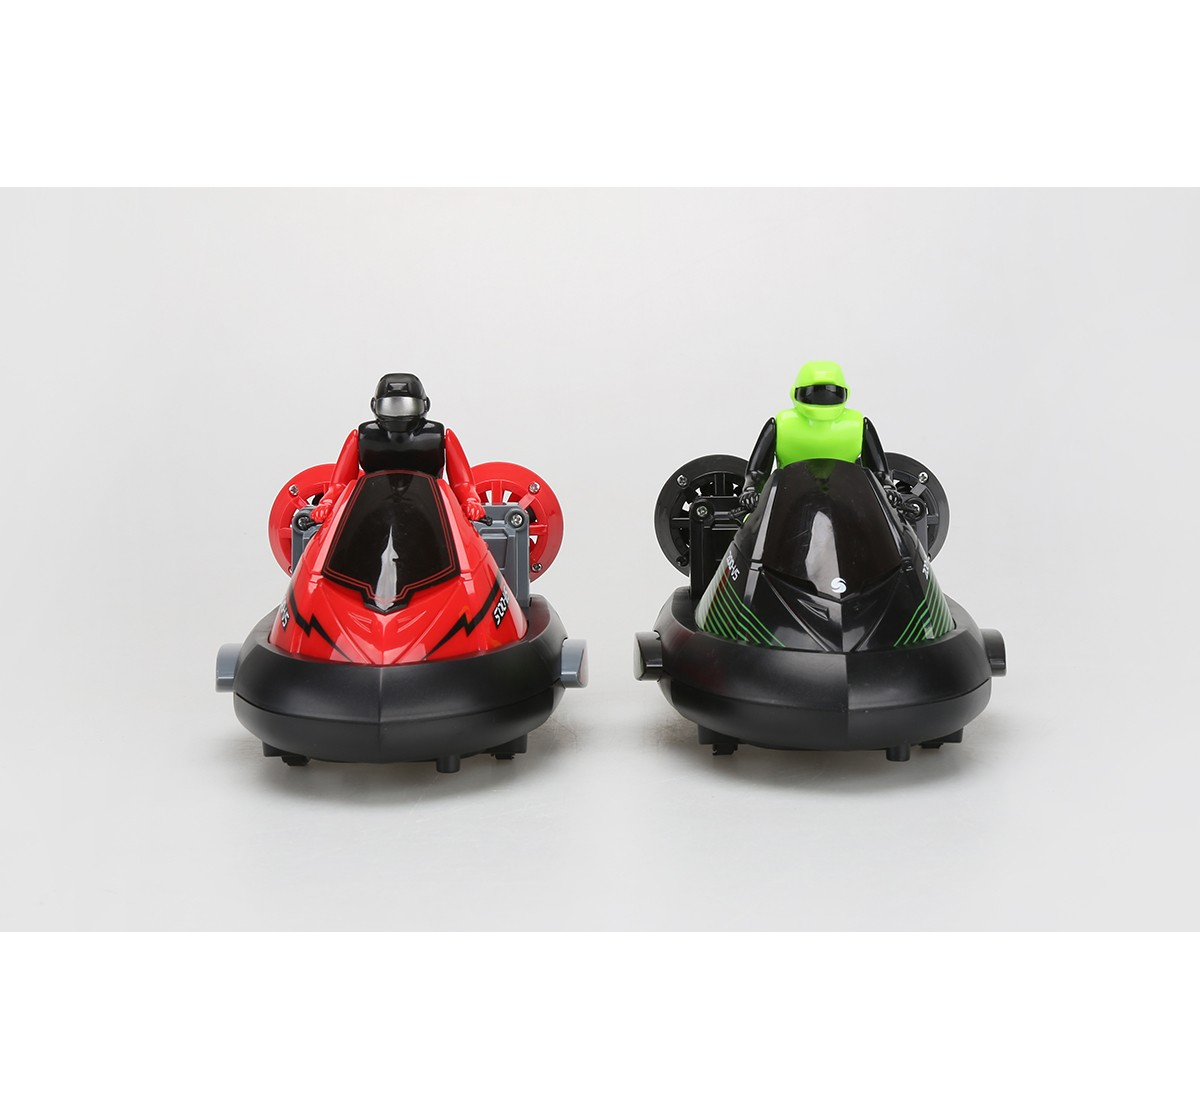 Dihua 2 R/C Bumper Cars with Figure Remote Controlled Toy for Kids age 8Y+